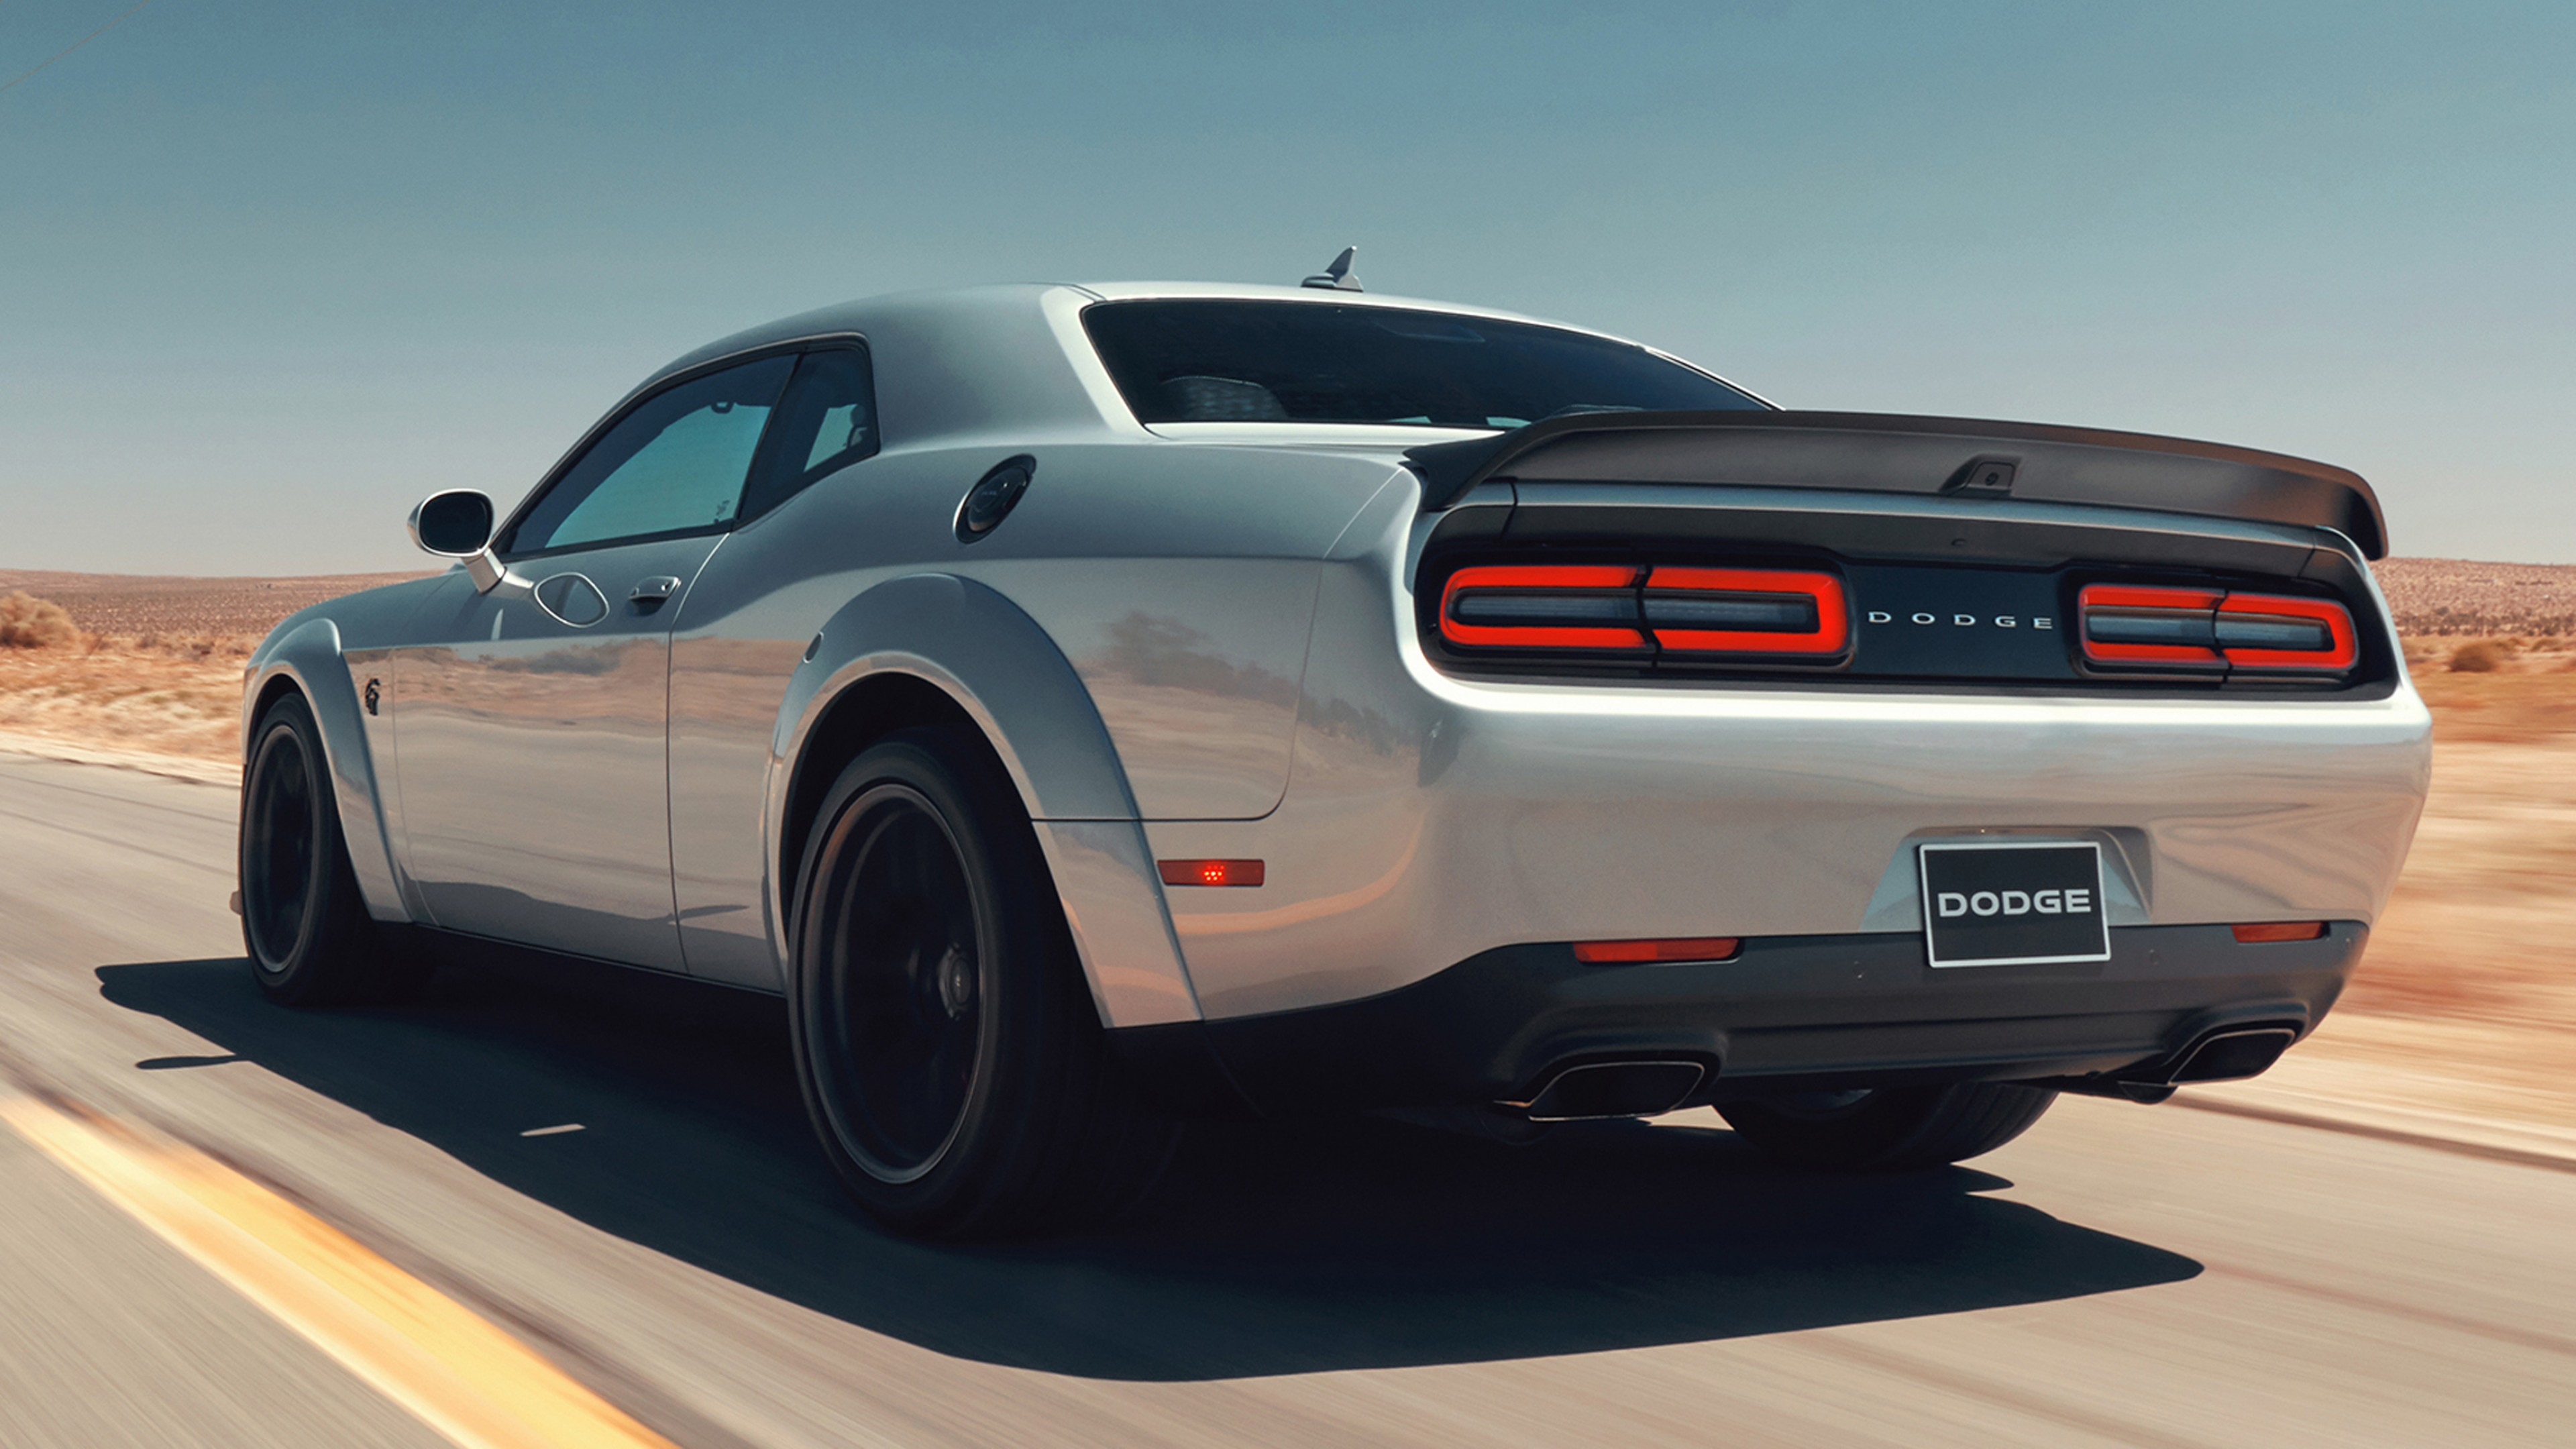 Wallpaper Dodge Challenger Srt Hellcat 2019 Cars 4k